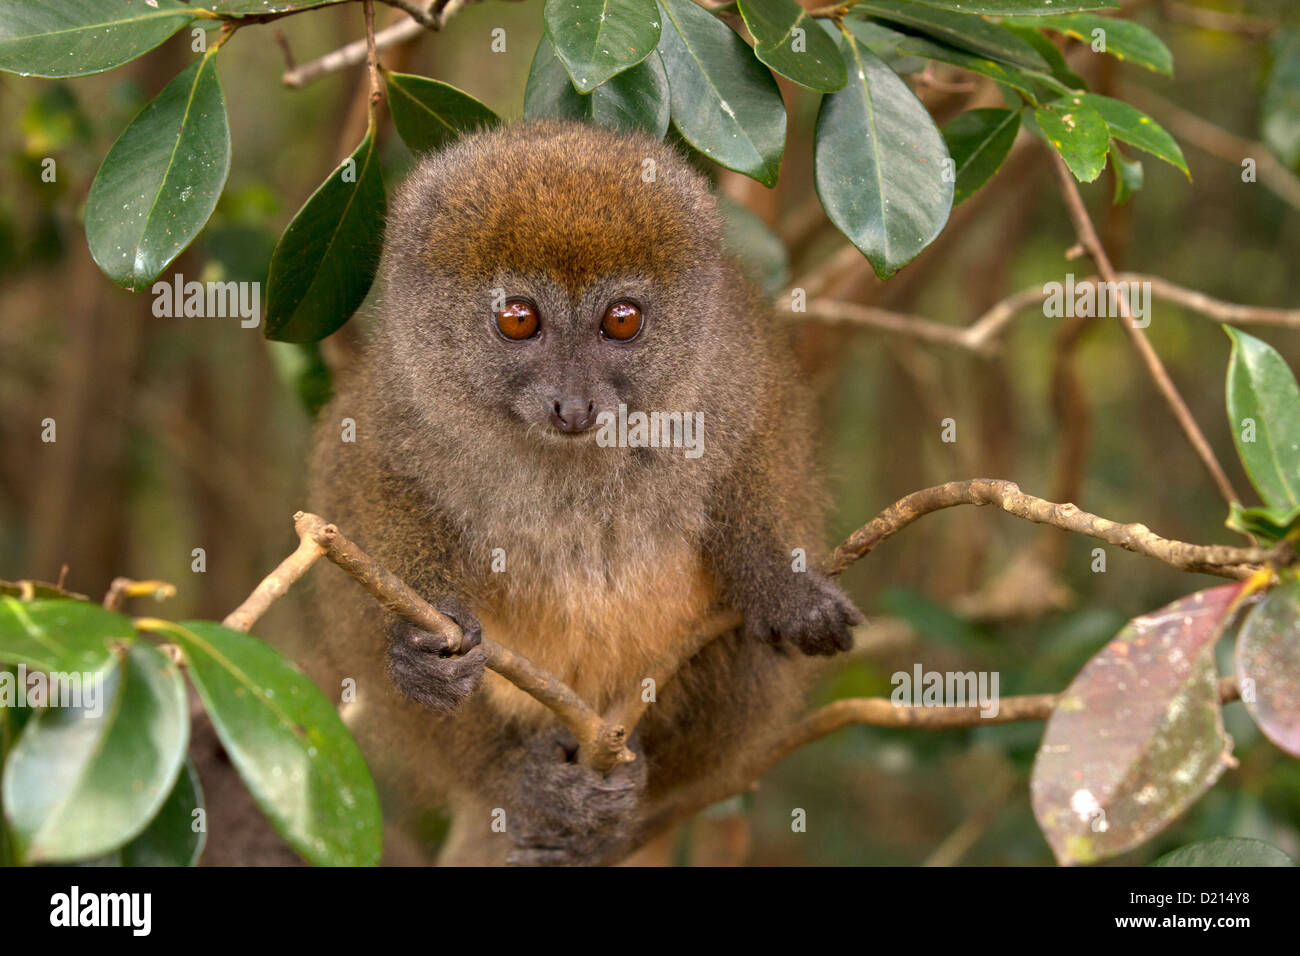 Eastern Grey Bamboo Lemur, Hapalemur griseus, watches - Stock Image